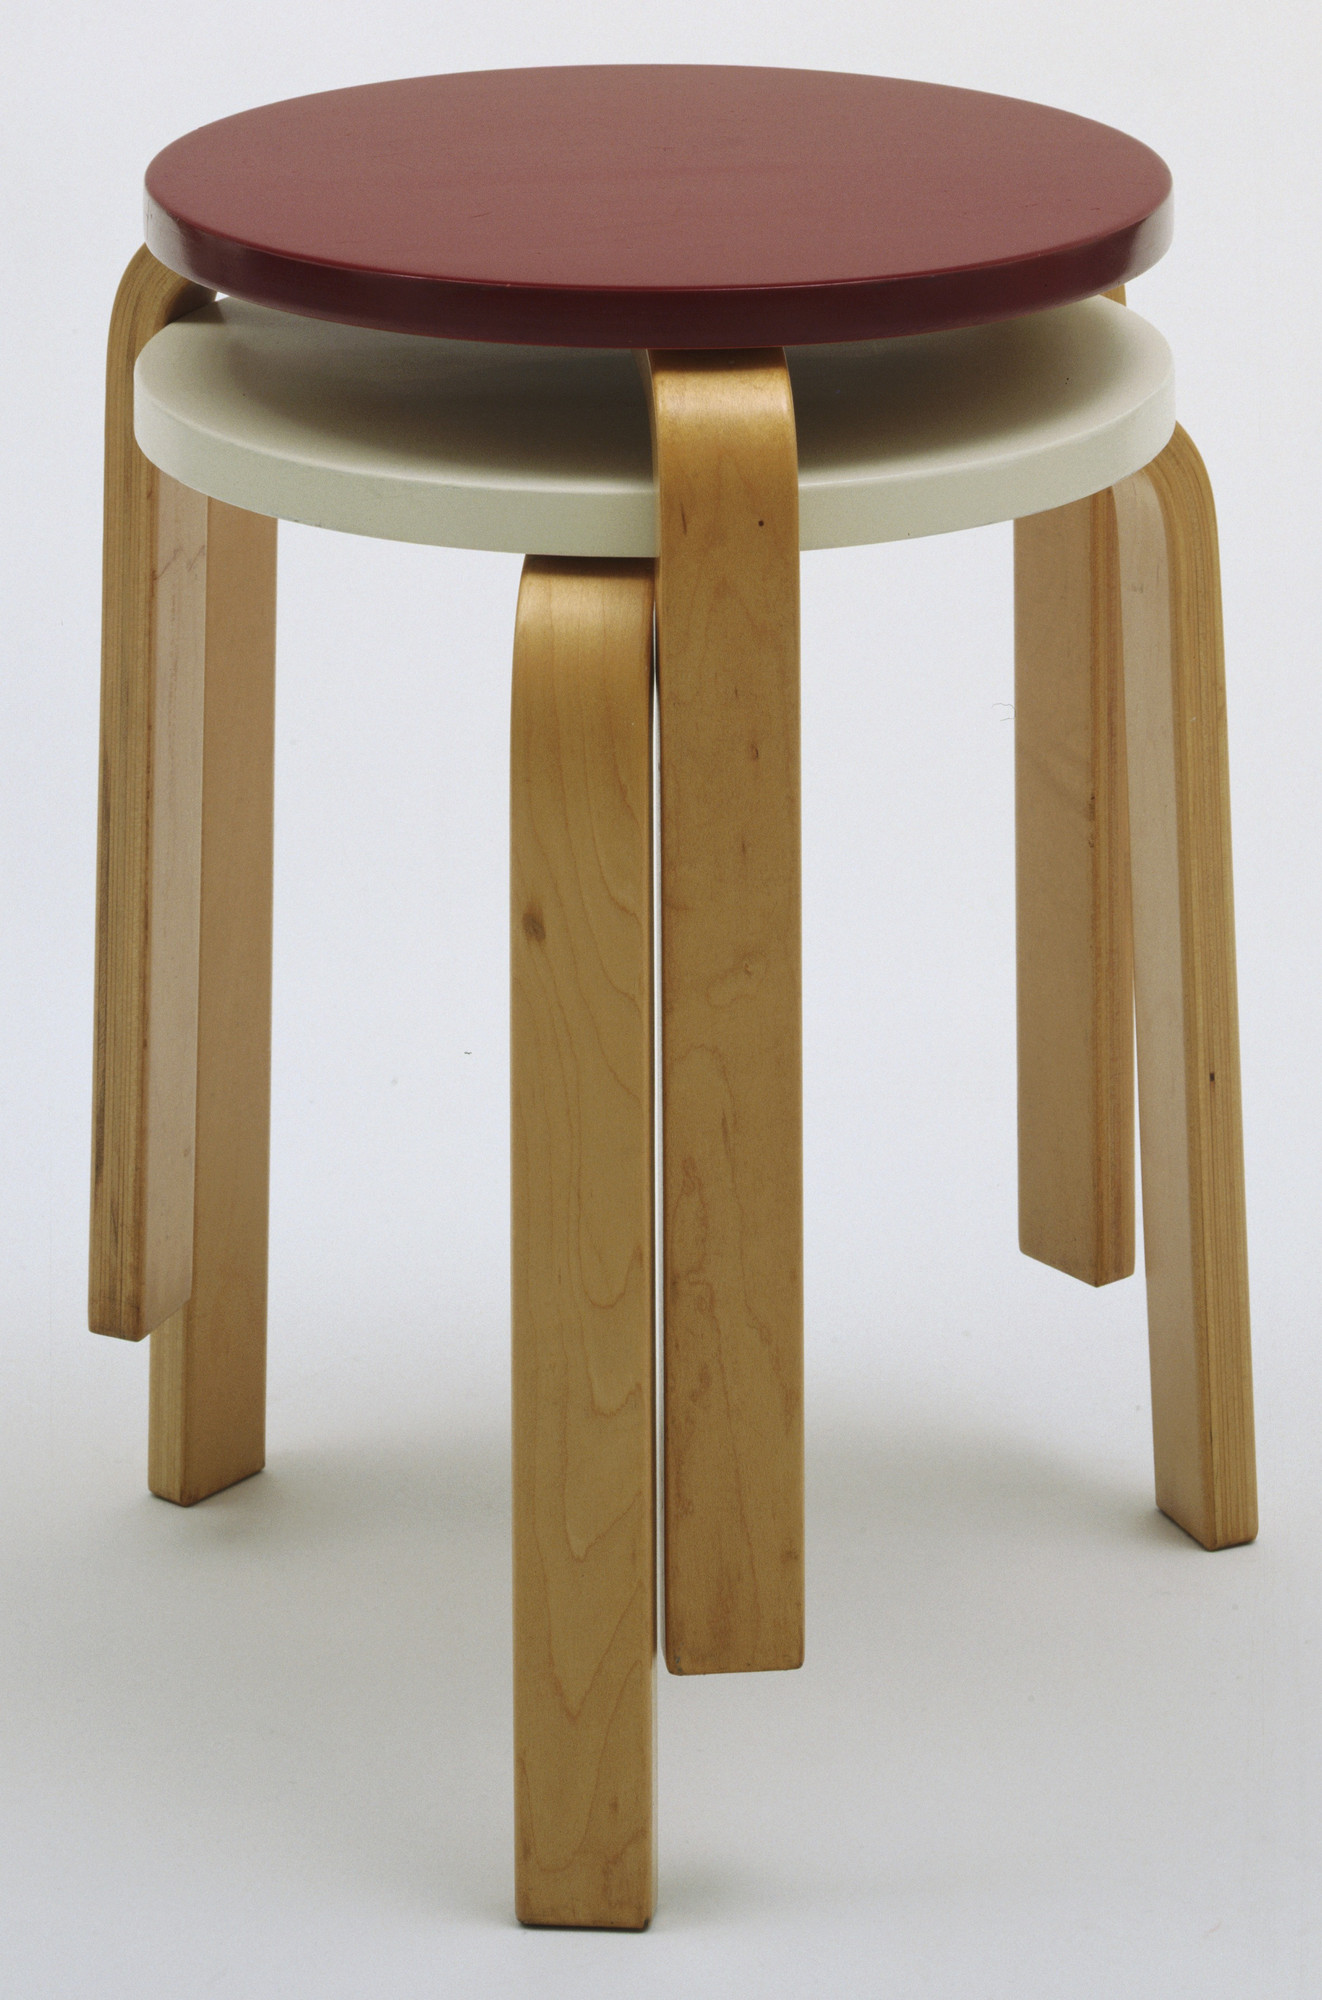 Alvar Aalto. Stacking Stools (model 60). 1932-33